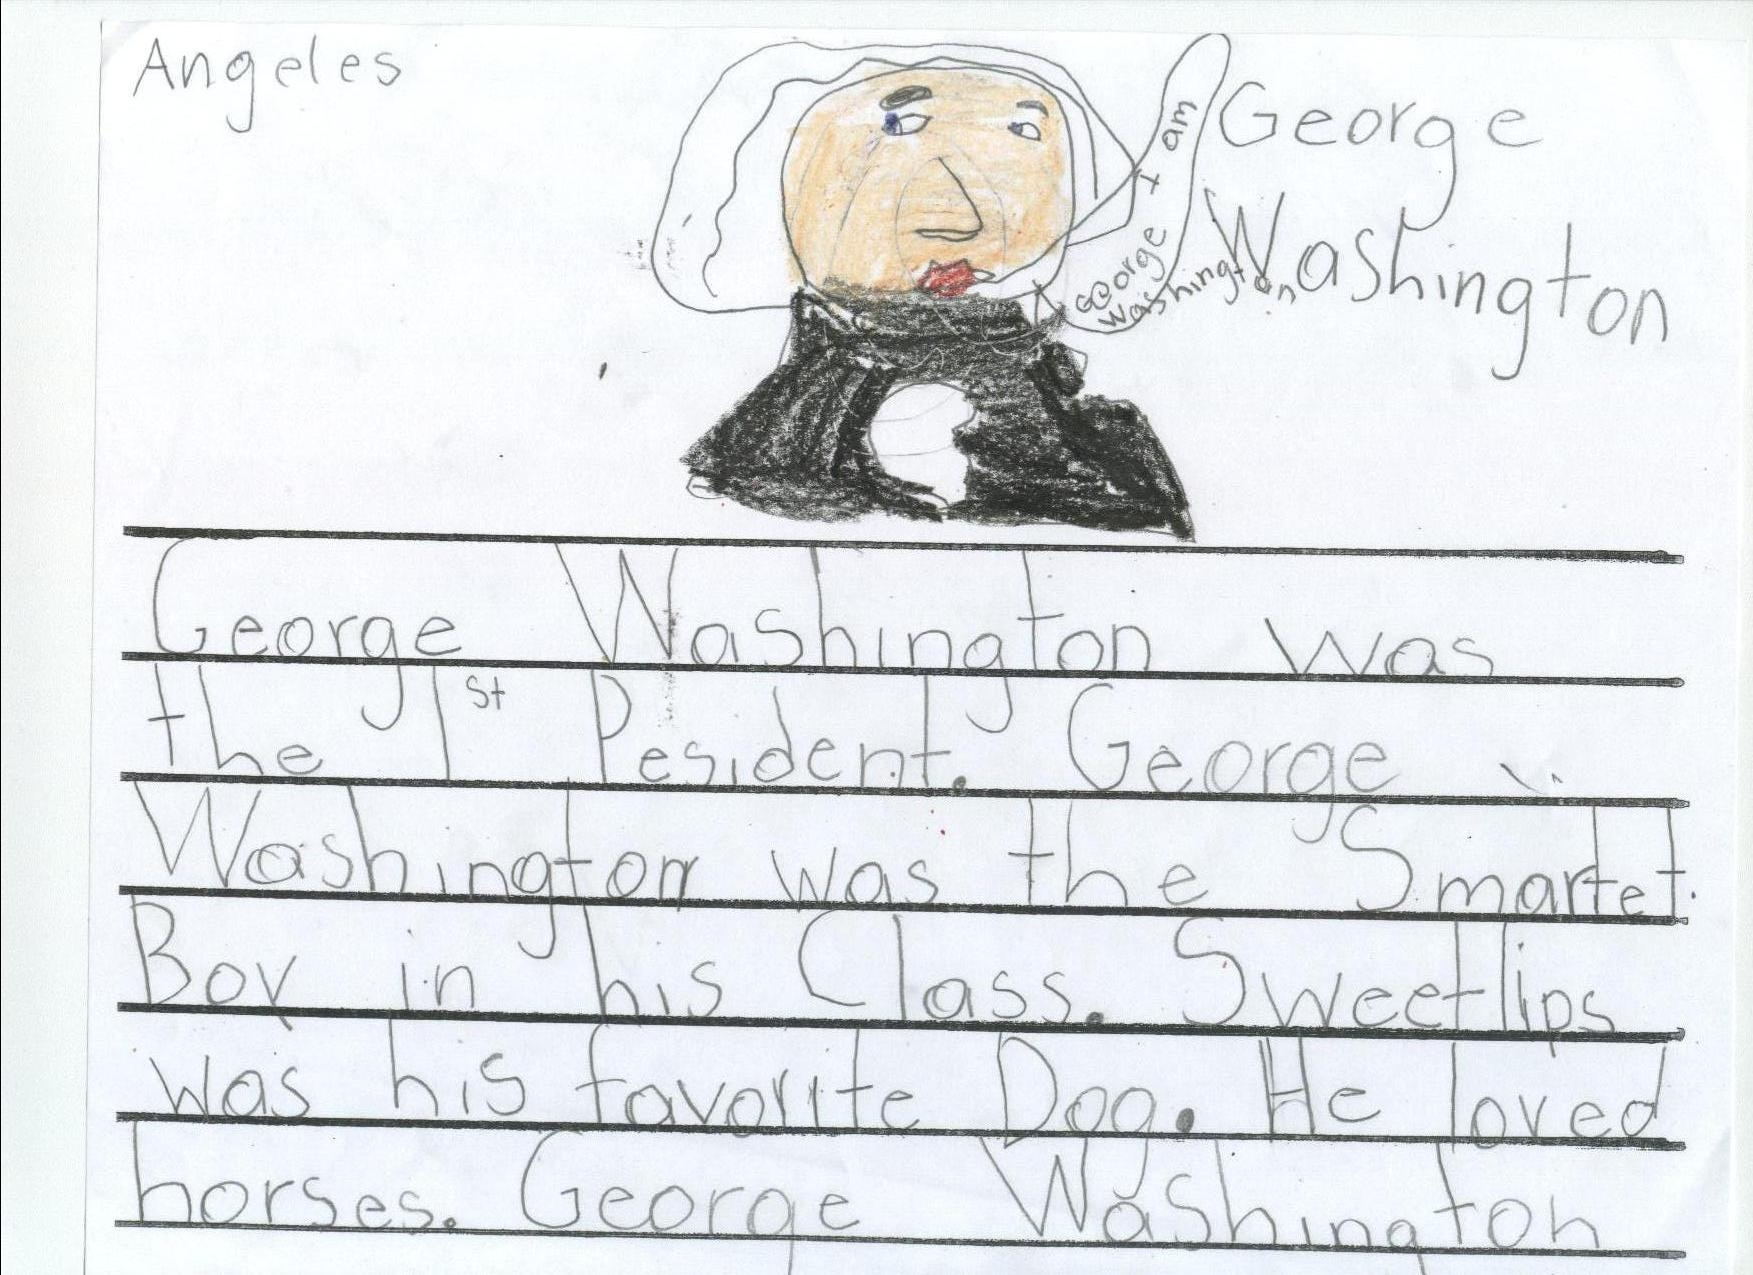 george washington statemanship essay As a soldier george washington demonstrated enough courage to become the commander of the virginia troops that defended the state's western frontier during the french and indian war he was also a successful tobacco planter at his family plantation in 1787 washington's concerns about the.